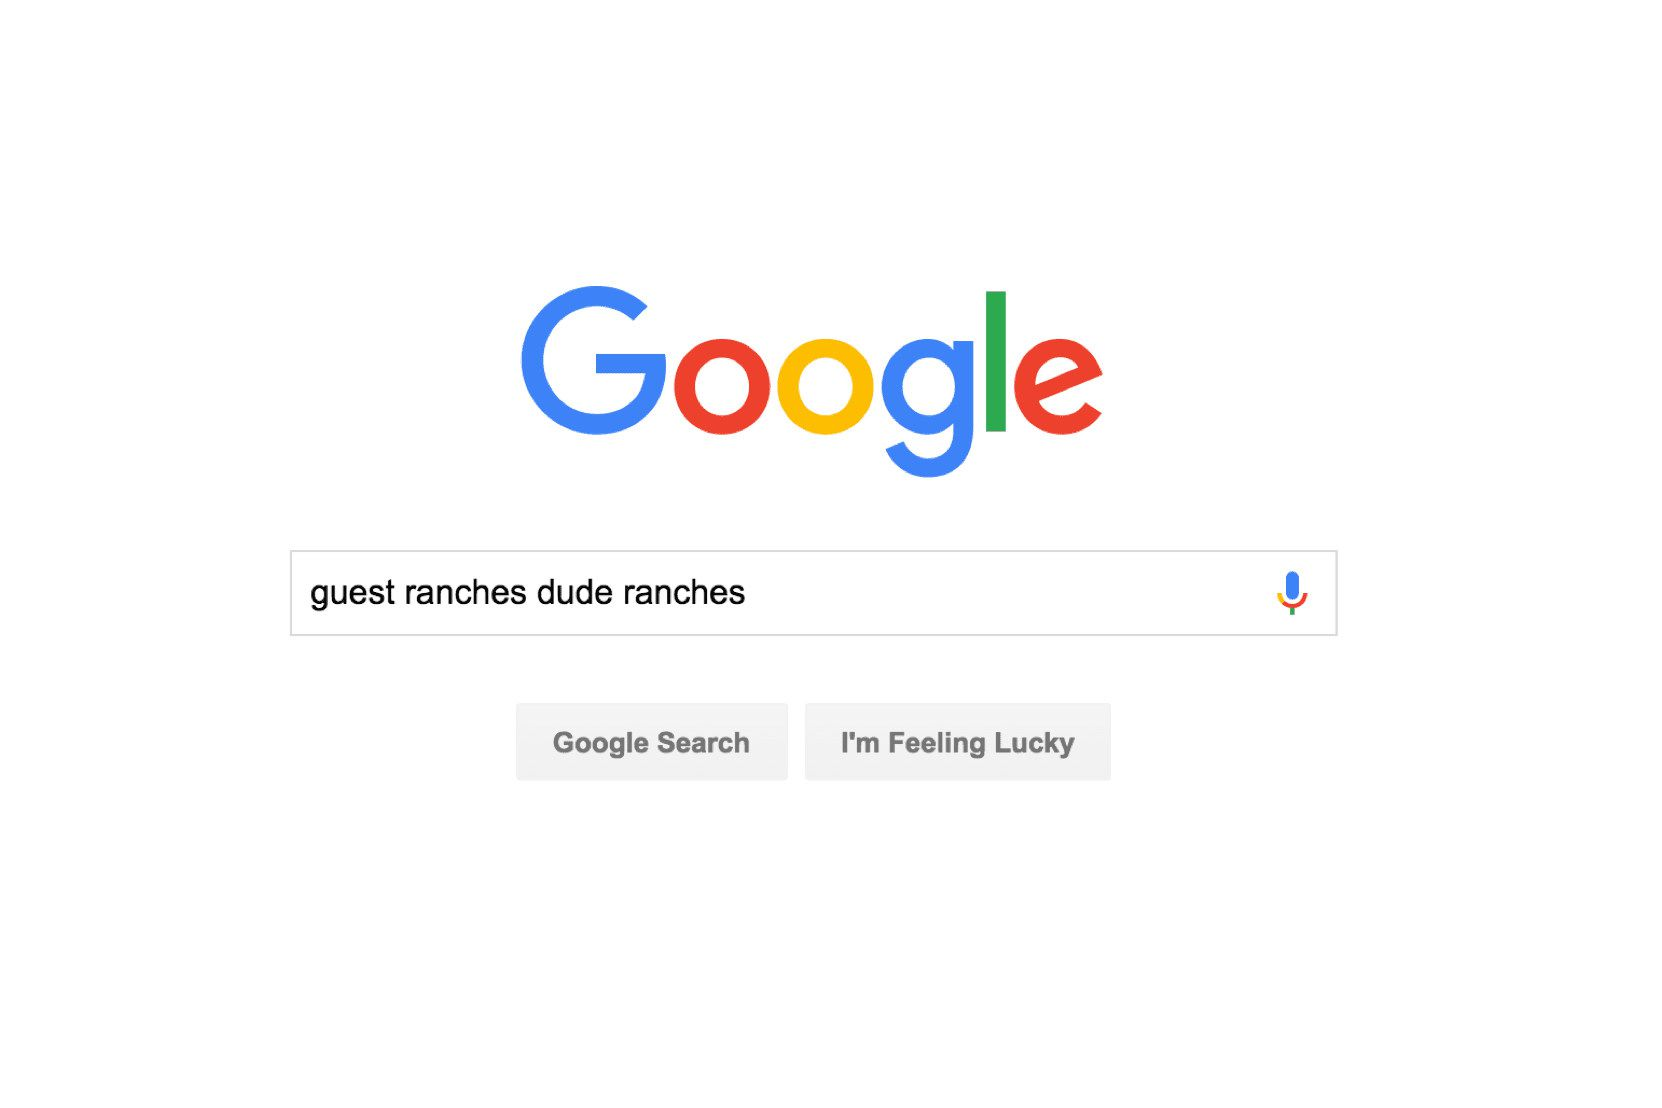 Google search for guest ranches or dude ranches